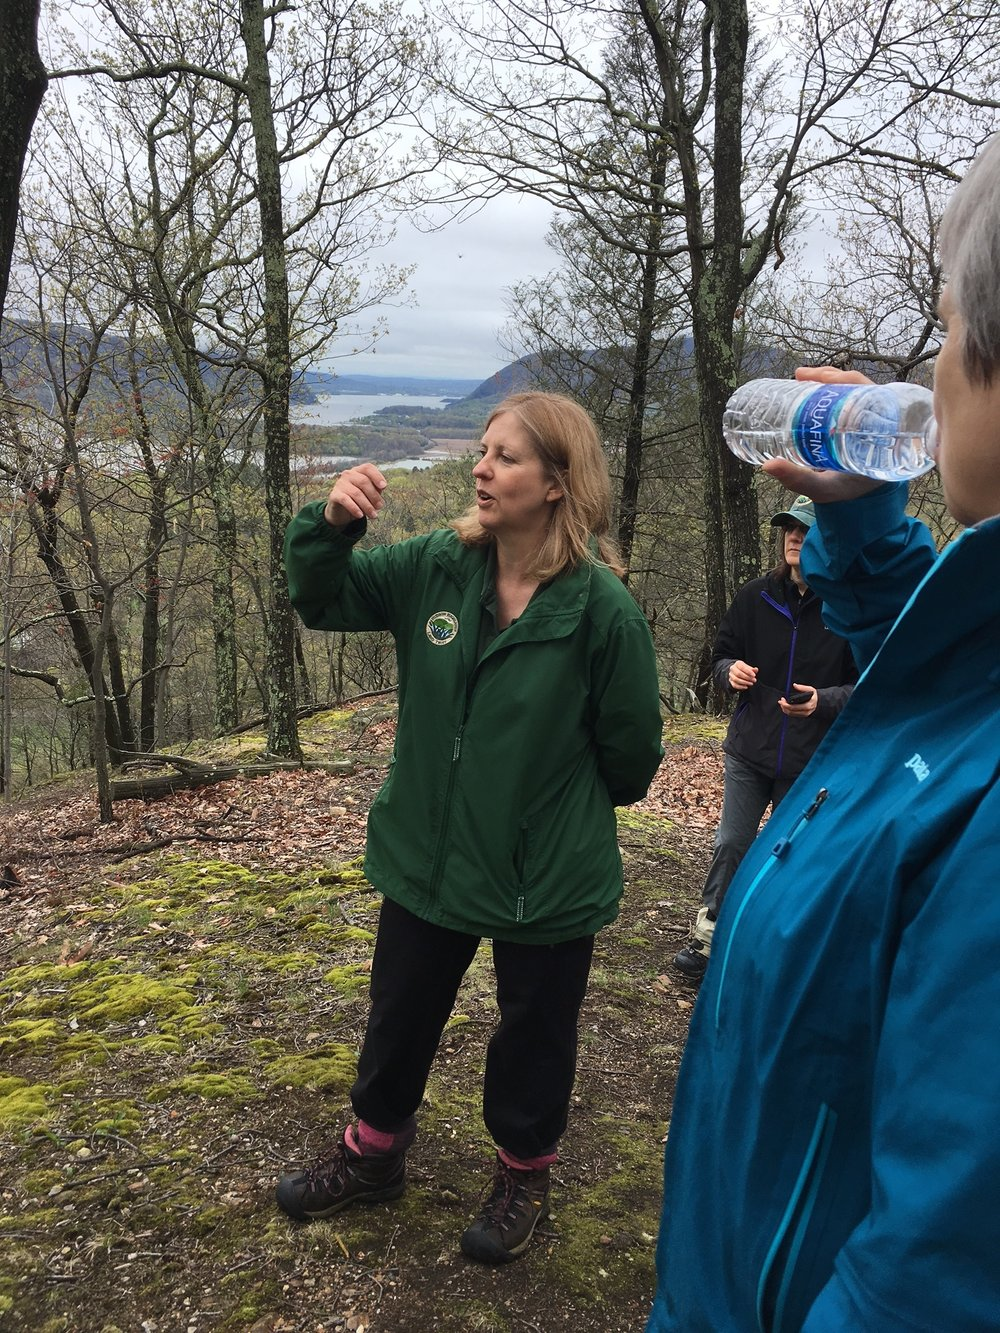 Michelle Smith, Executive Director of Hudson Highlands Land Trust, points out Constitution Marsh and West Point from the North Redoubt